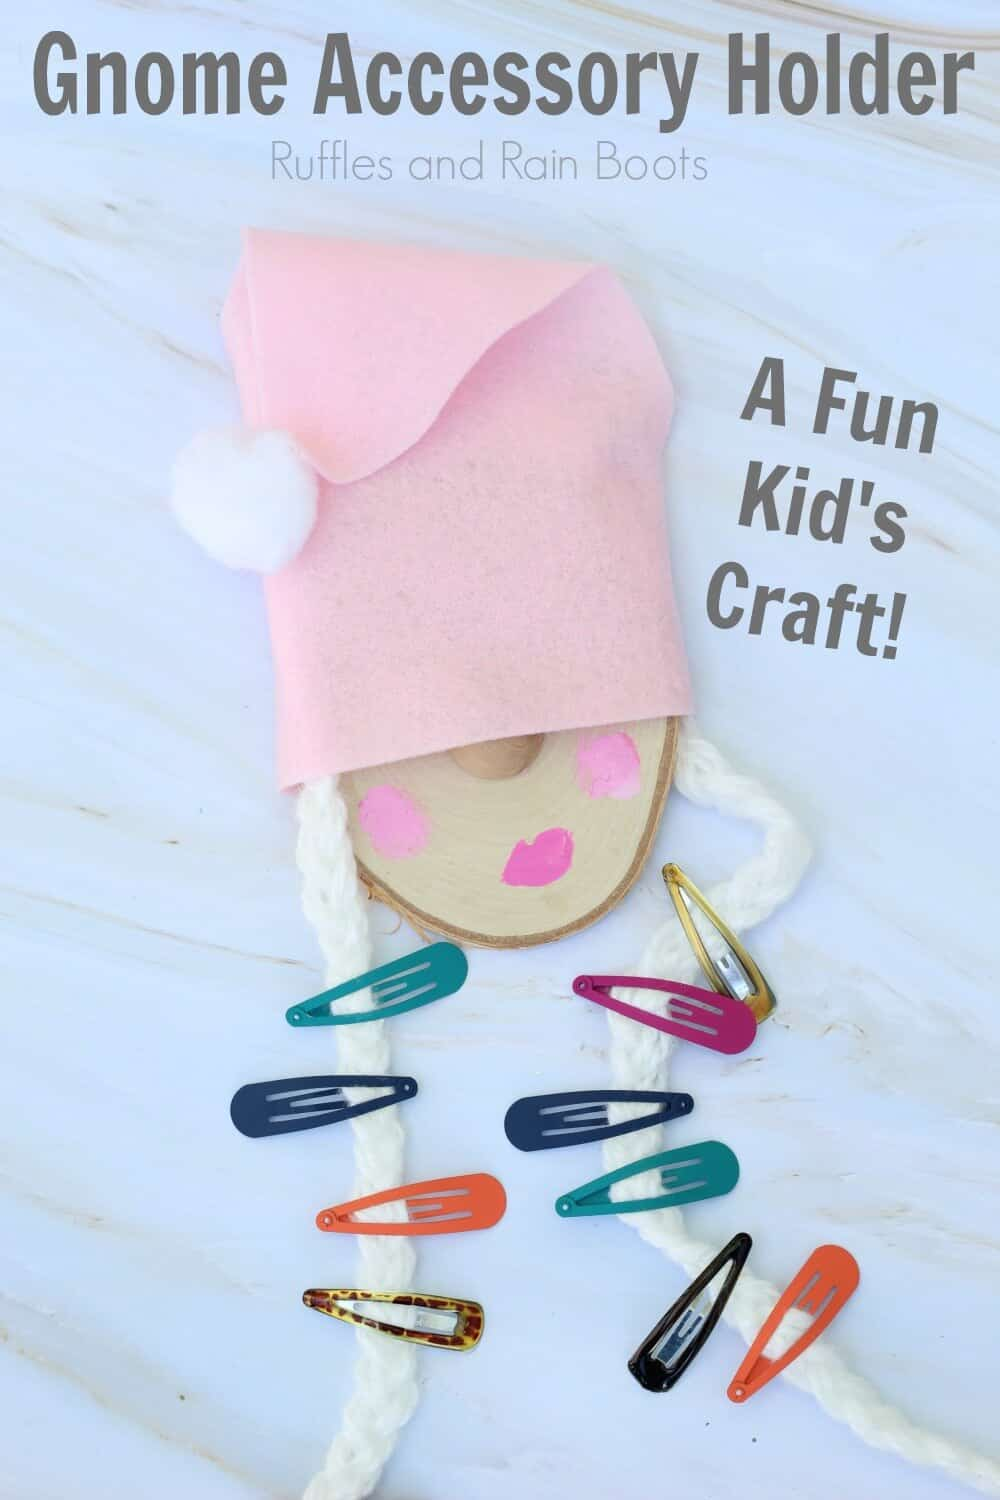 fun gnome girls craft close up of barrette holder with text gnome accessory holder a fun kid's craft